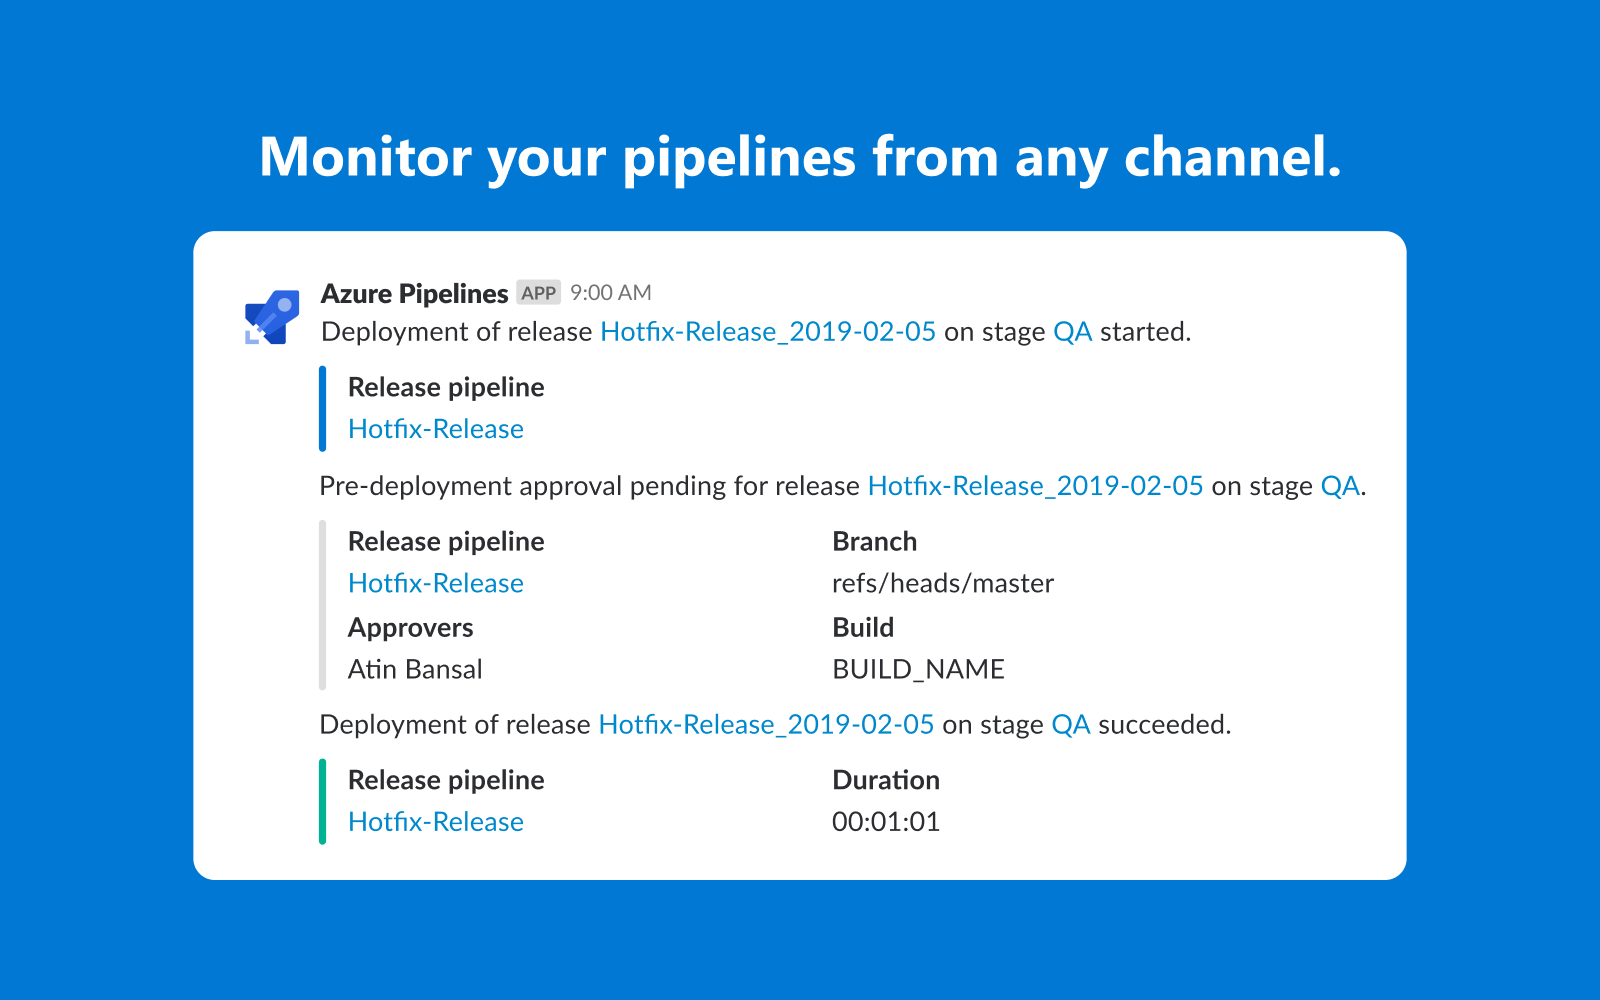 Monitor your pipelines